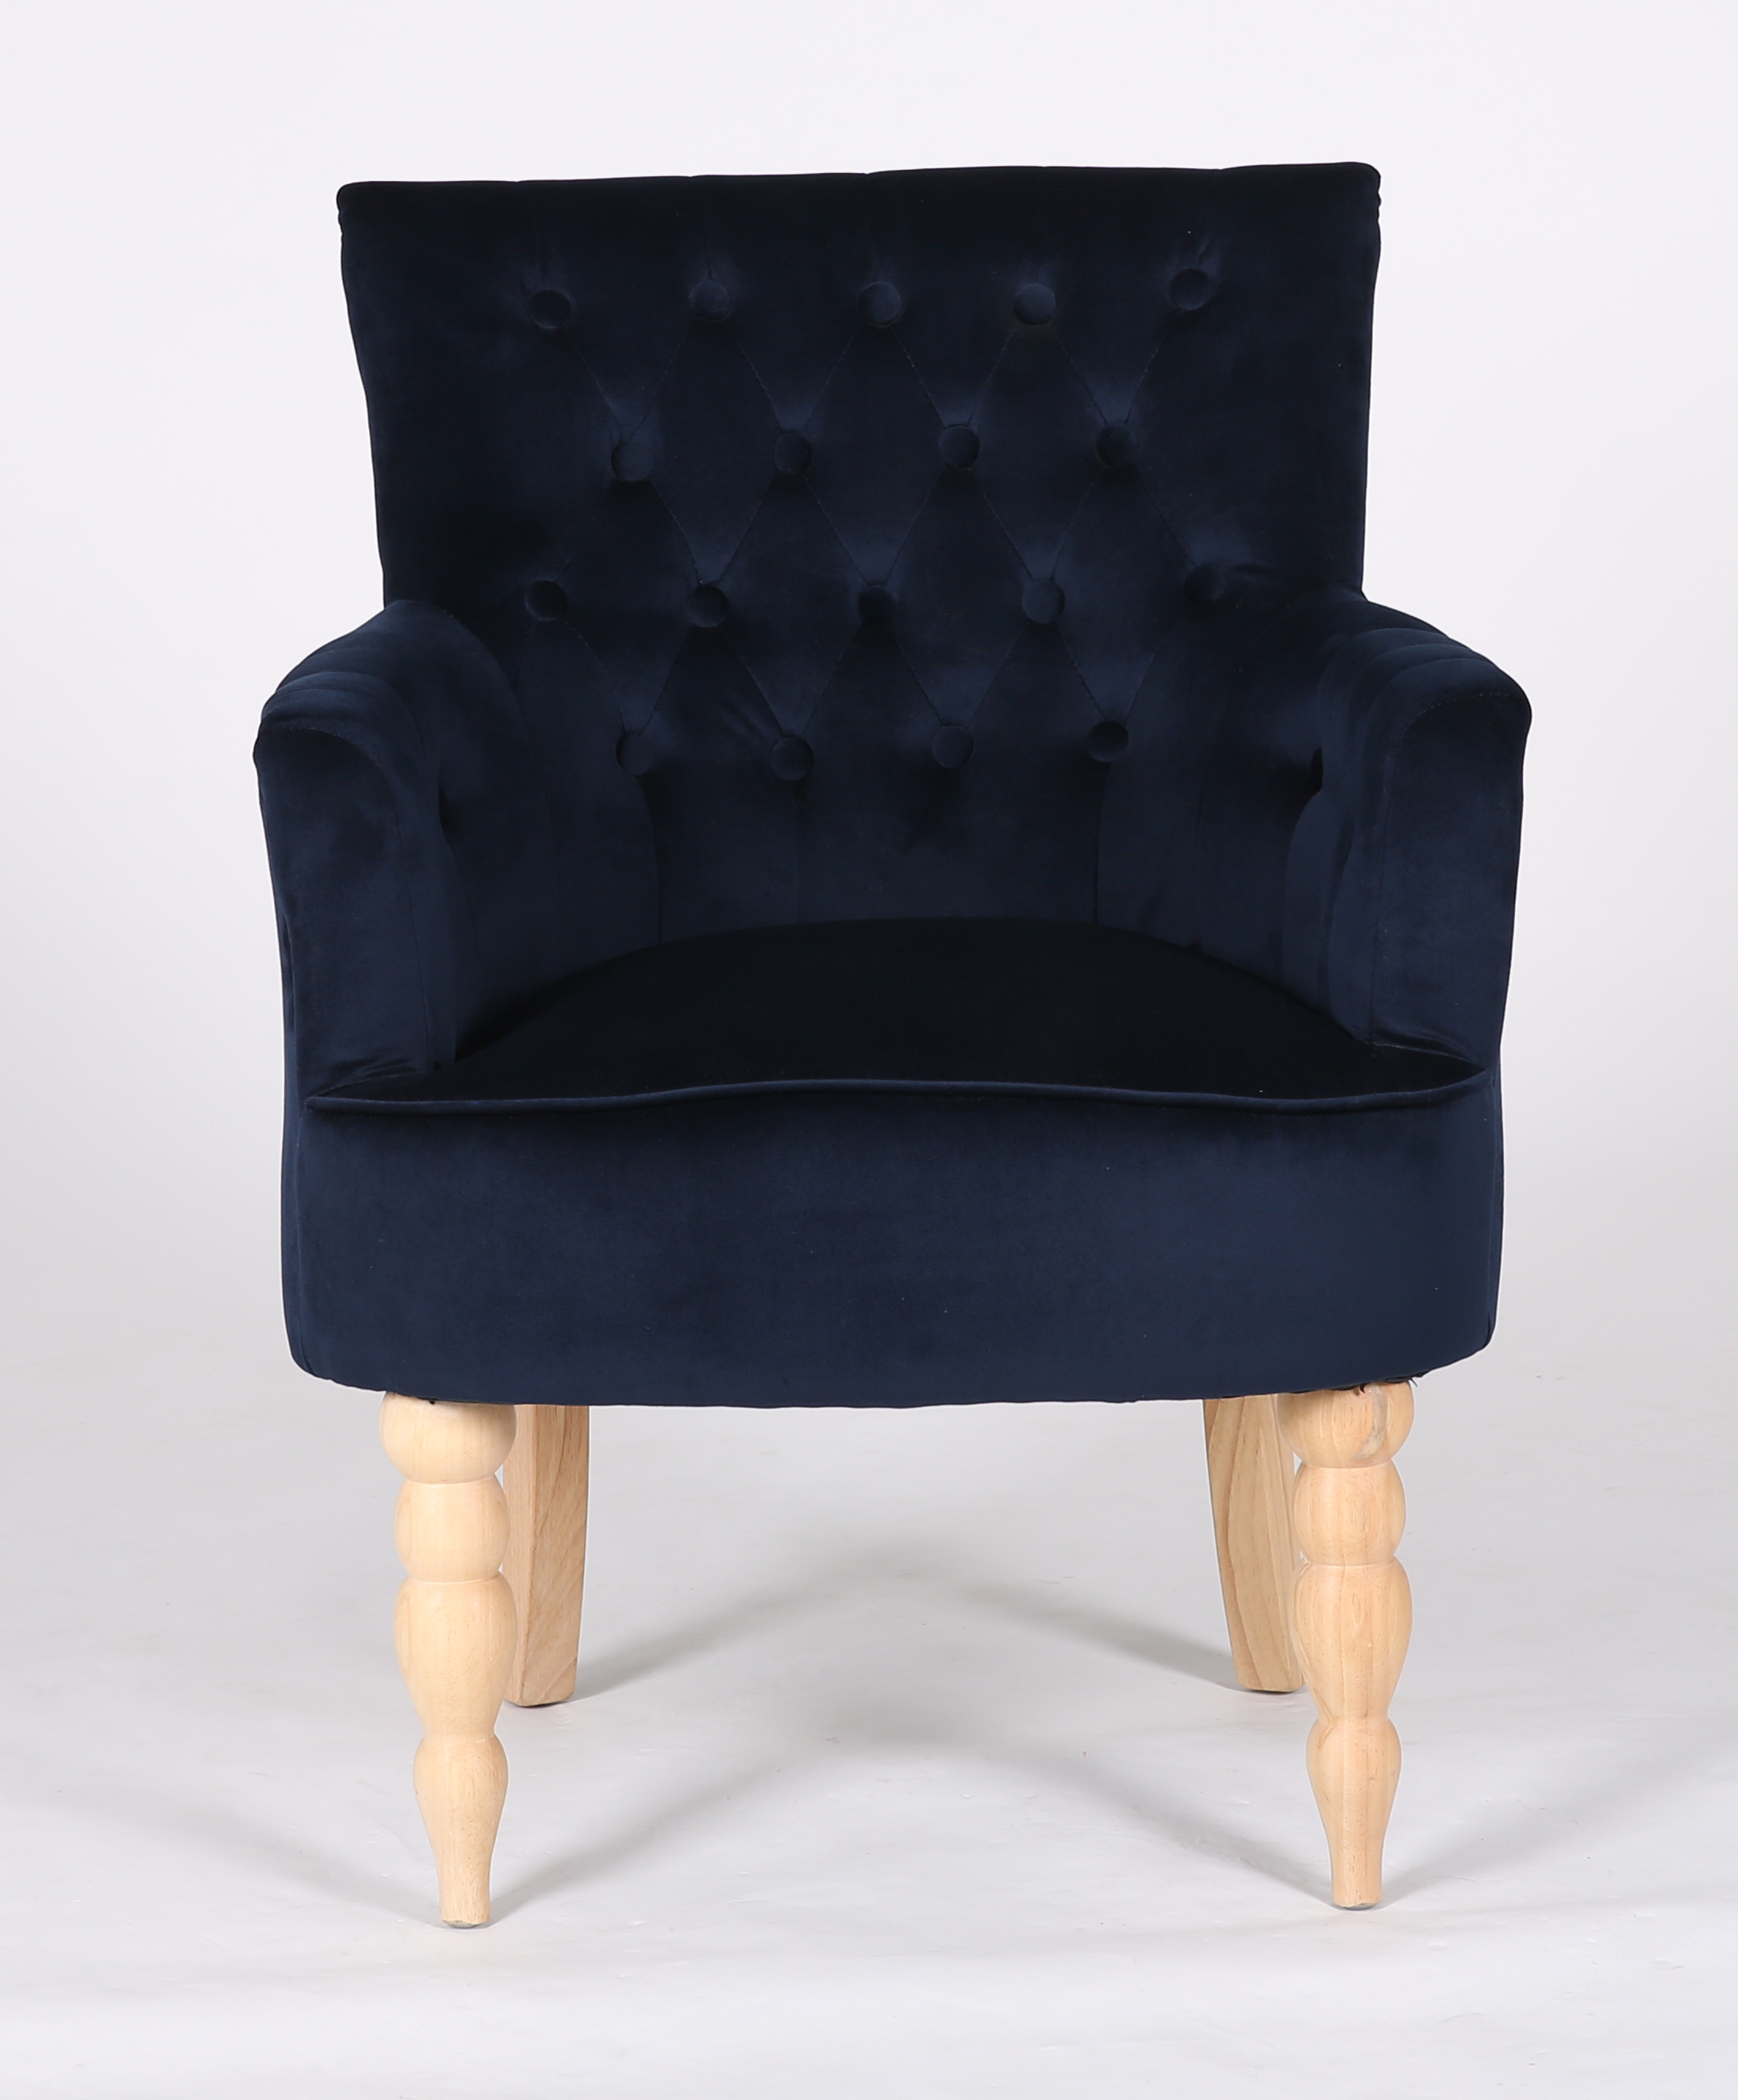 Velvet Fabric Leisure Chair Living Room Chairs Wooden Chair Navy Blue  Chairs Fabric - Buy Antique Velvet Fabric Chairs,Yellow Velvet Chair,Home  Chair ...